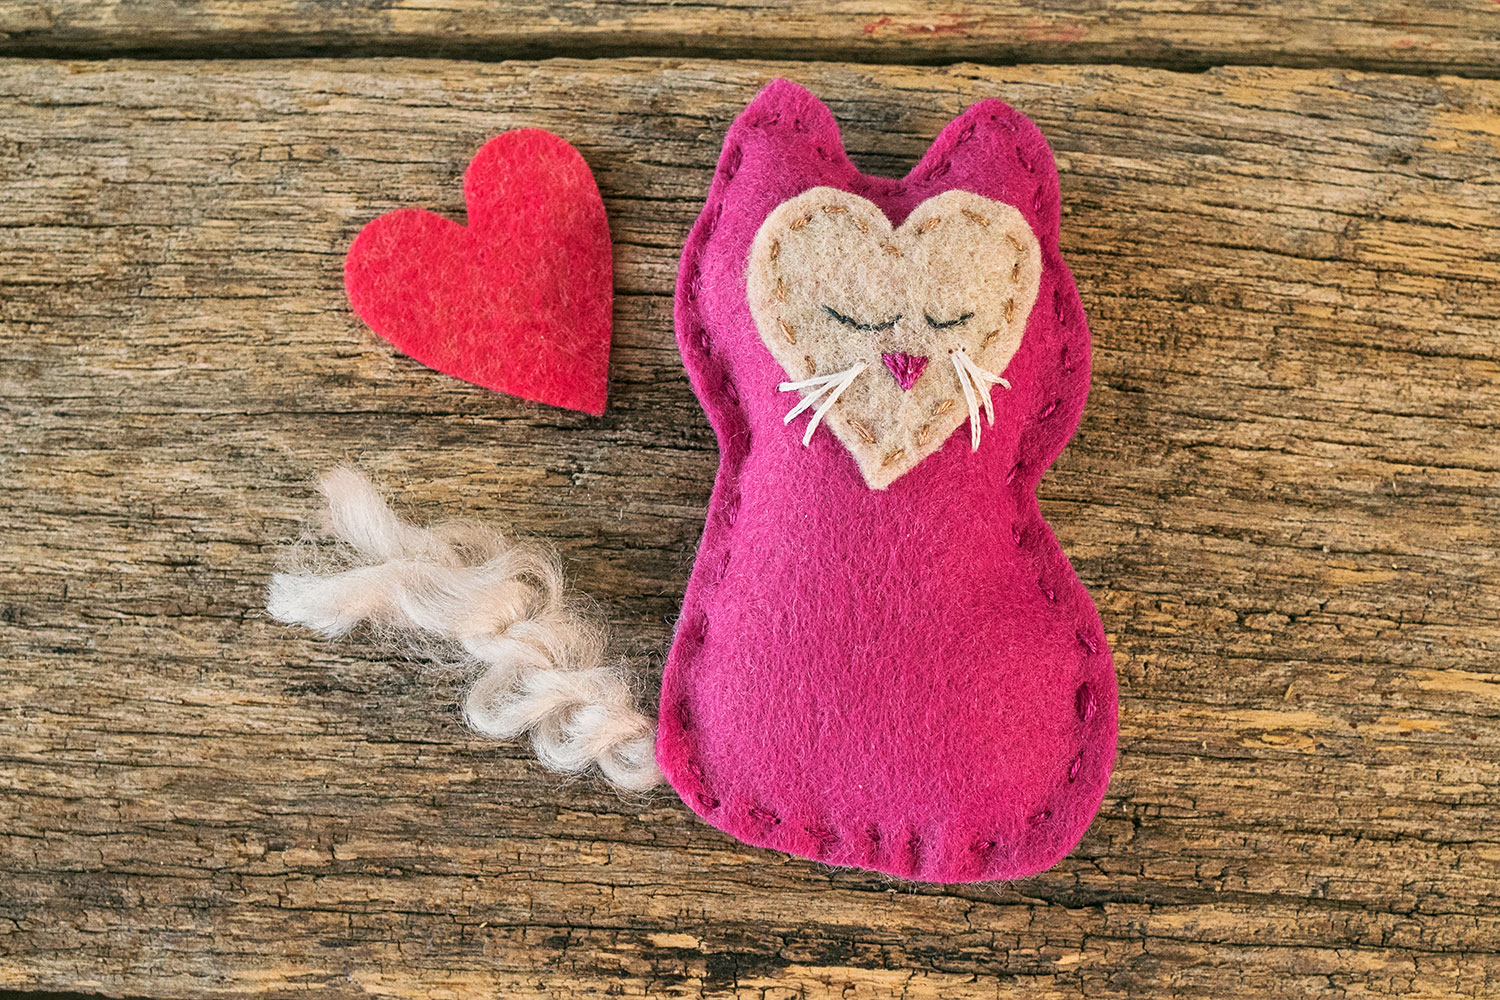 closeup of a handstitched felt kitten toy with a felt heart cut out